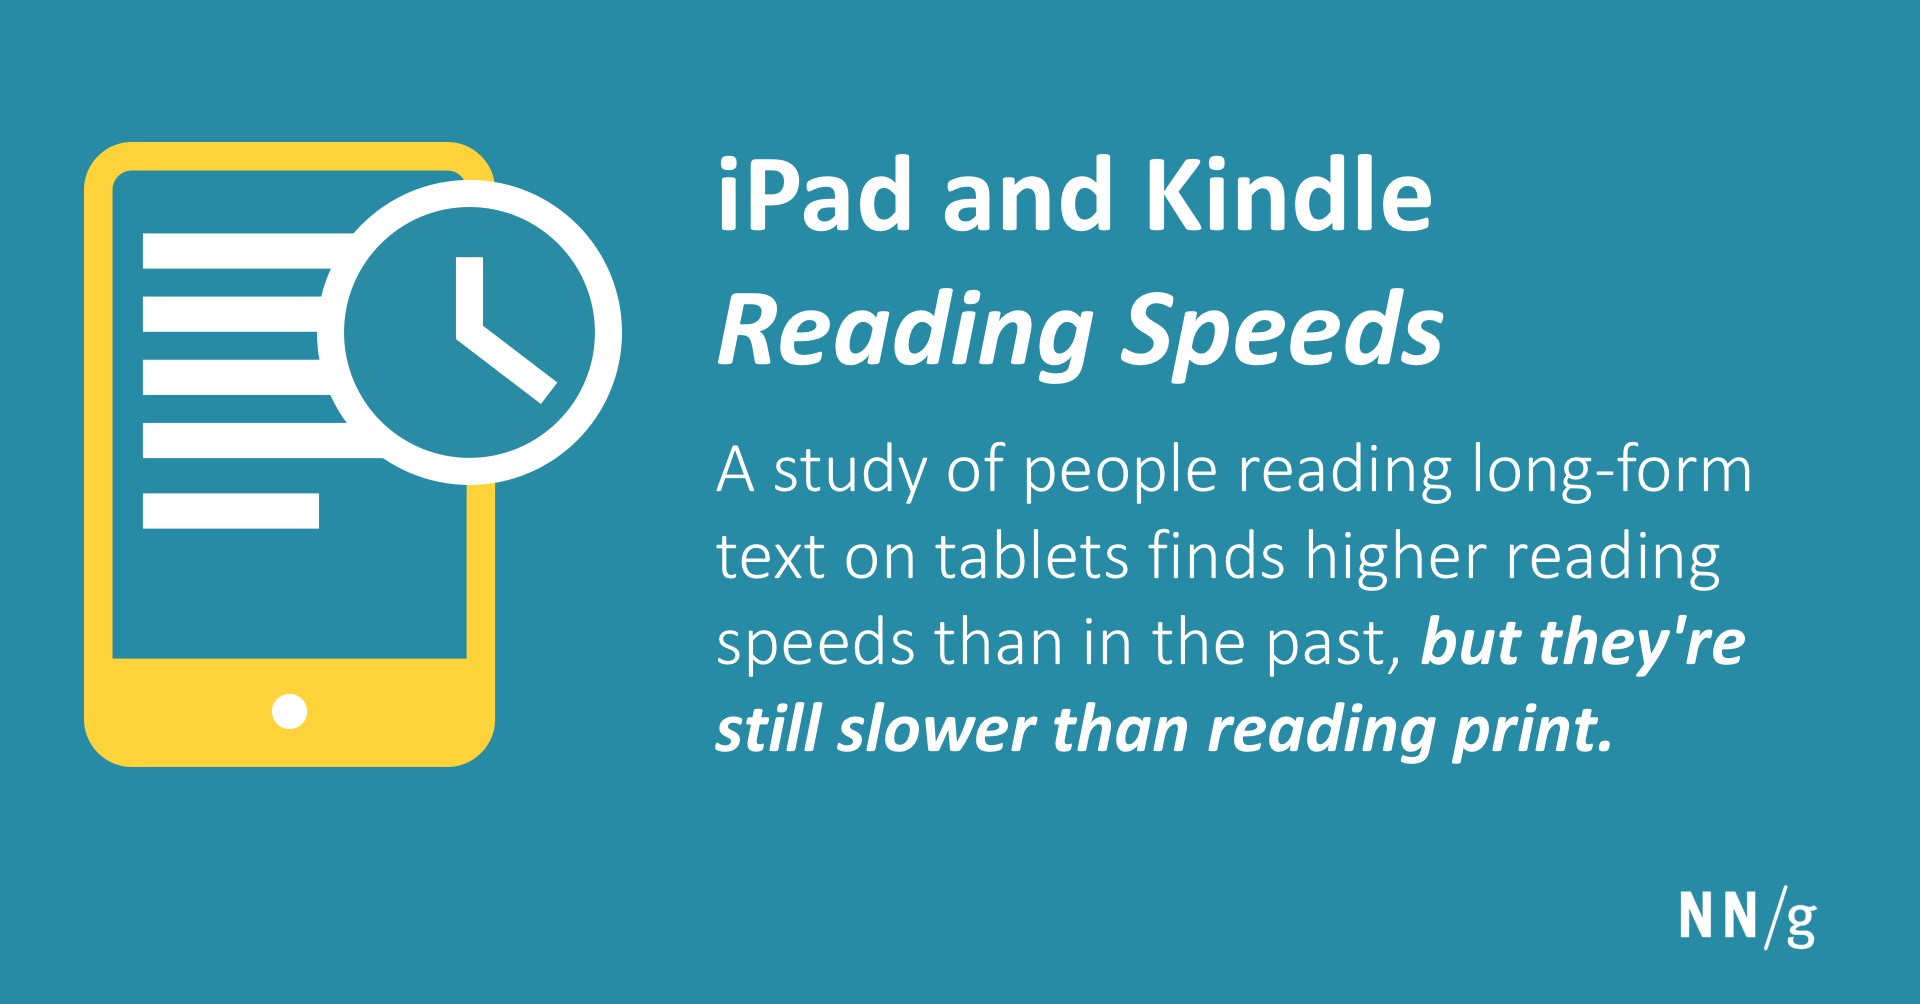 iPad and Kindle Reading Speeds